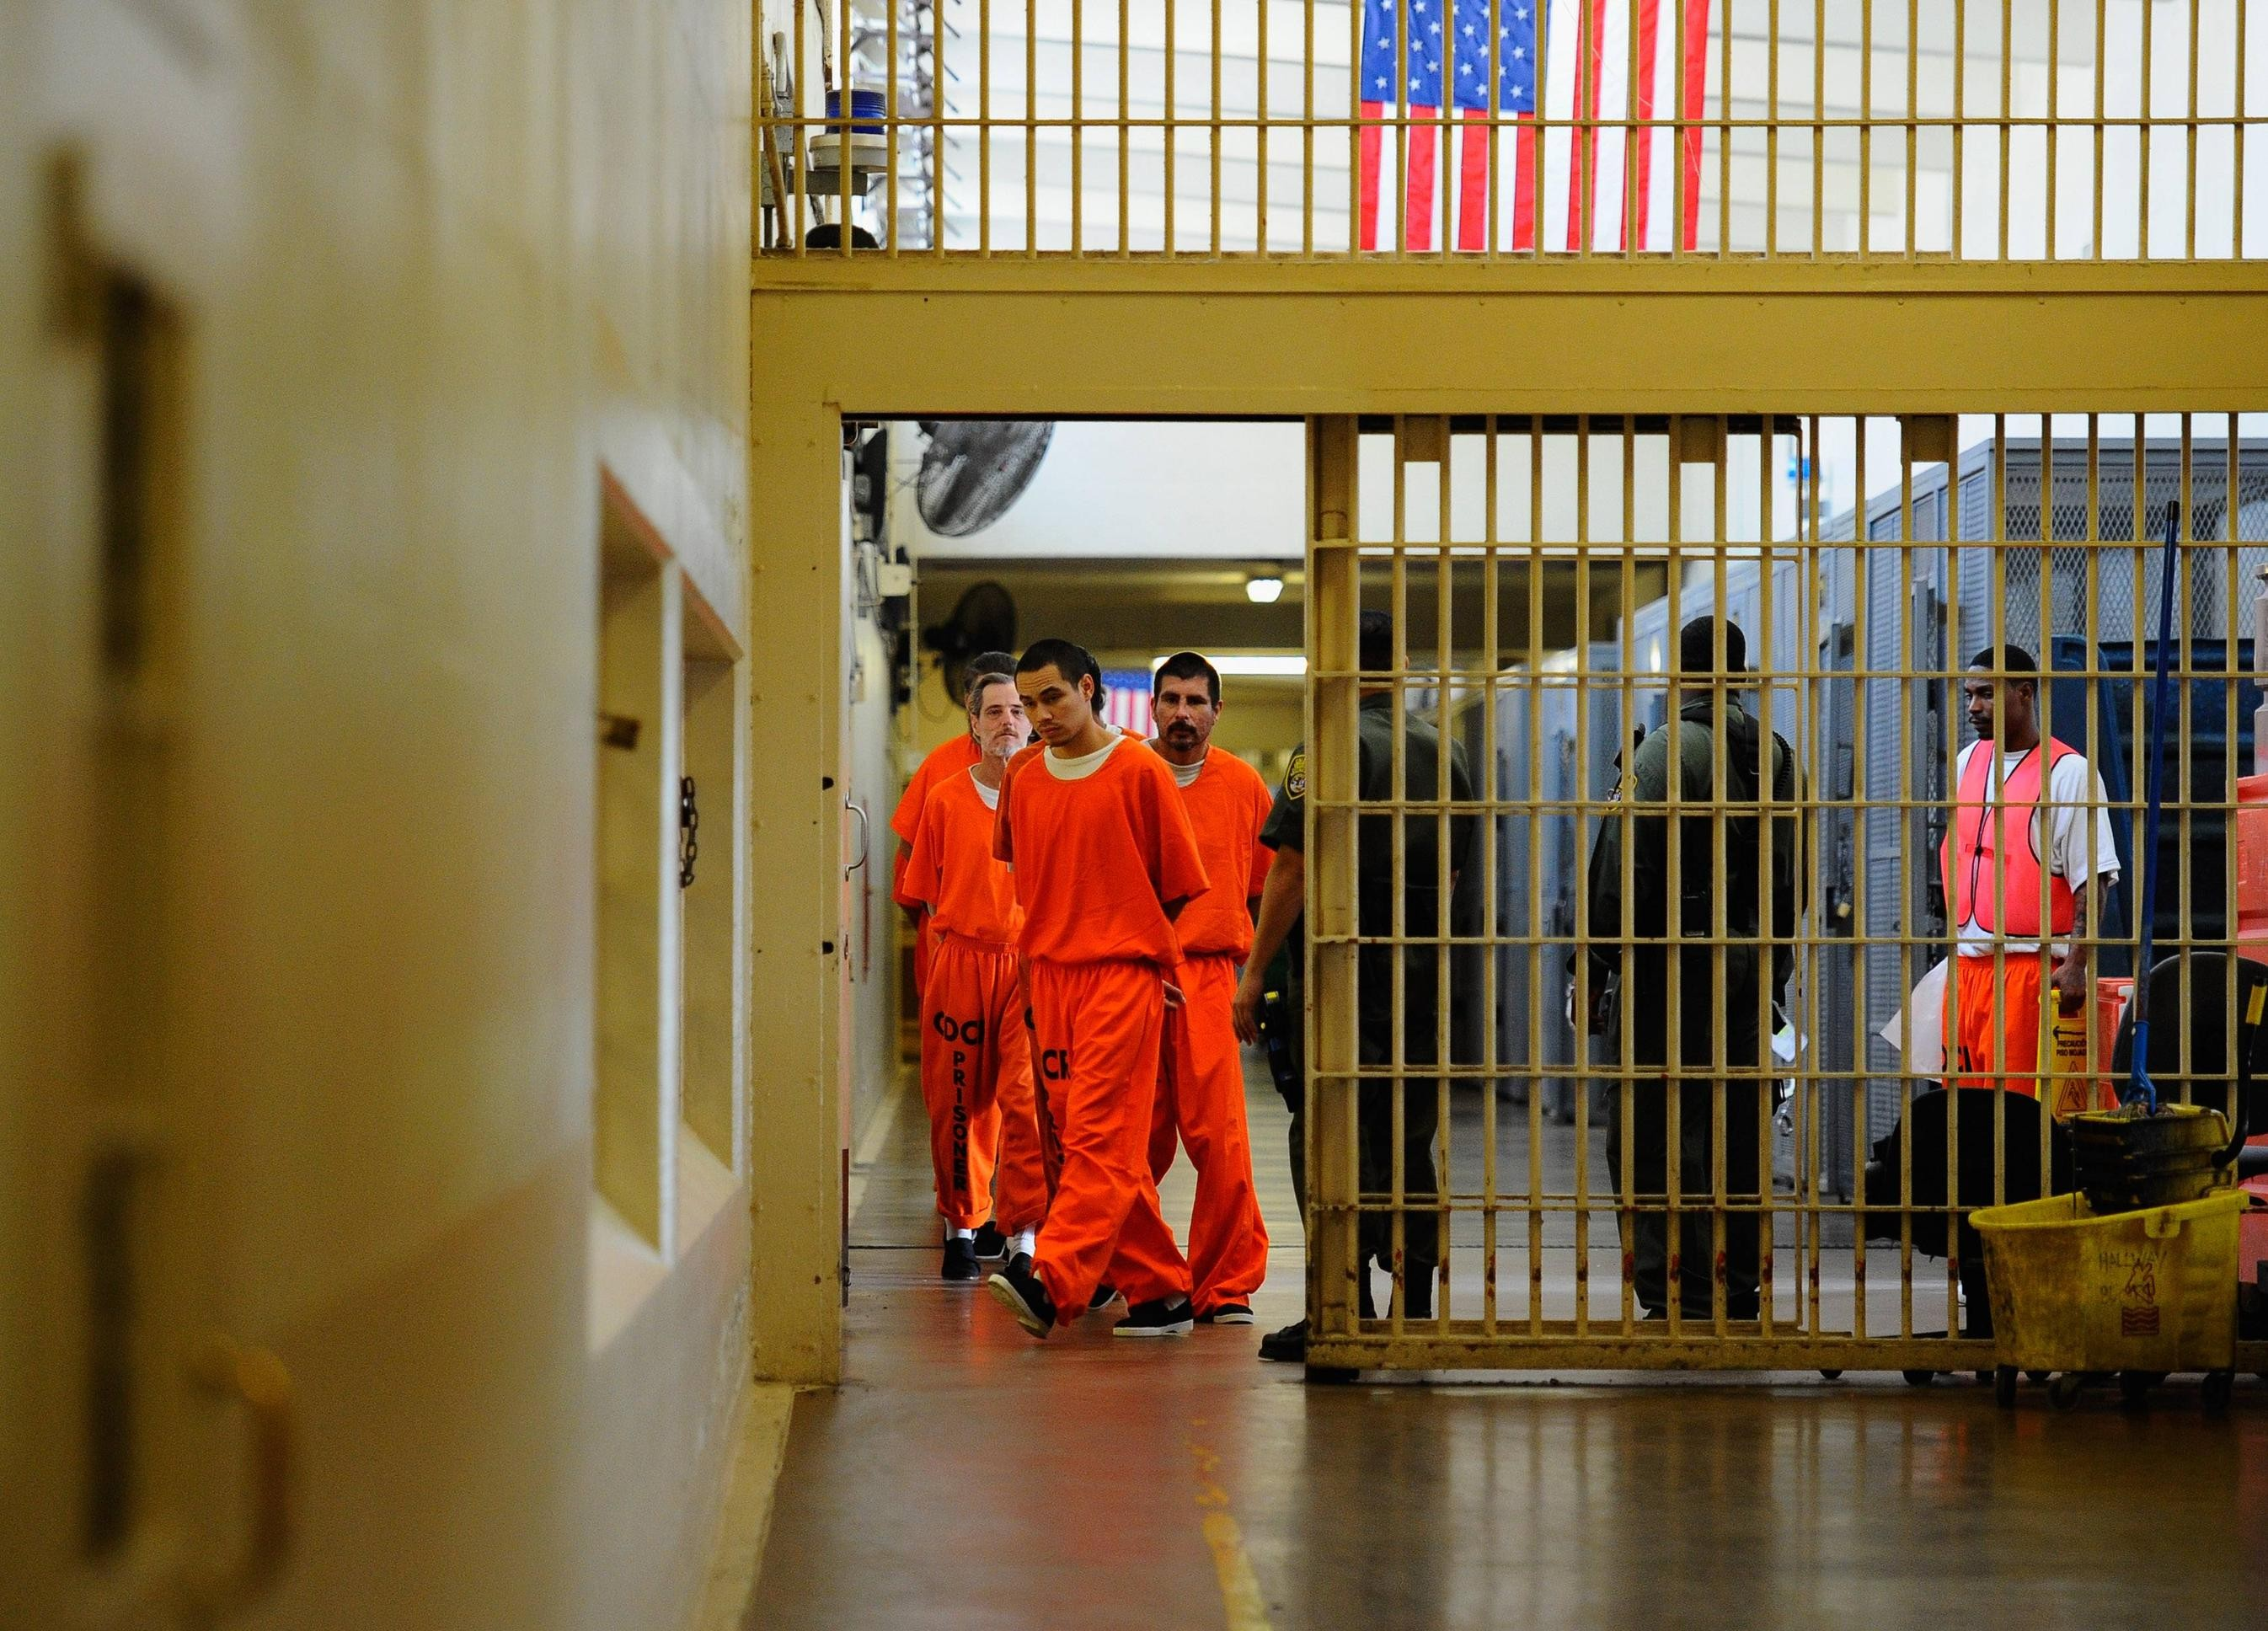 the cost of prison Health care for inmates in california prisons cost the state nearly$2 billion last year it's doubled over the past three years stricter sentencing laws are keeping people in prison longer, and they're getting old and sick.